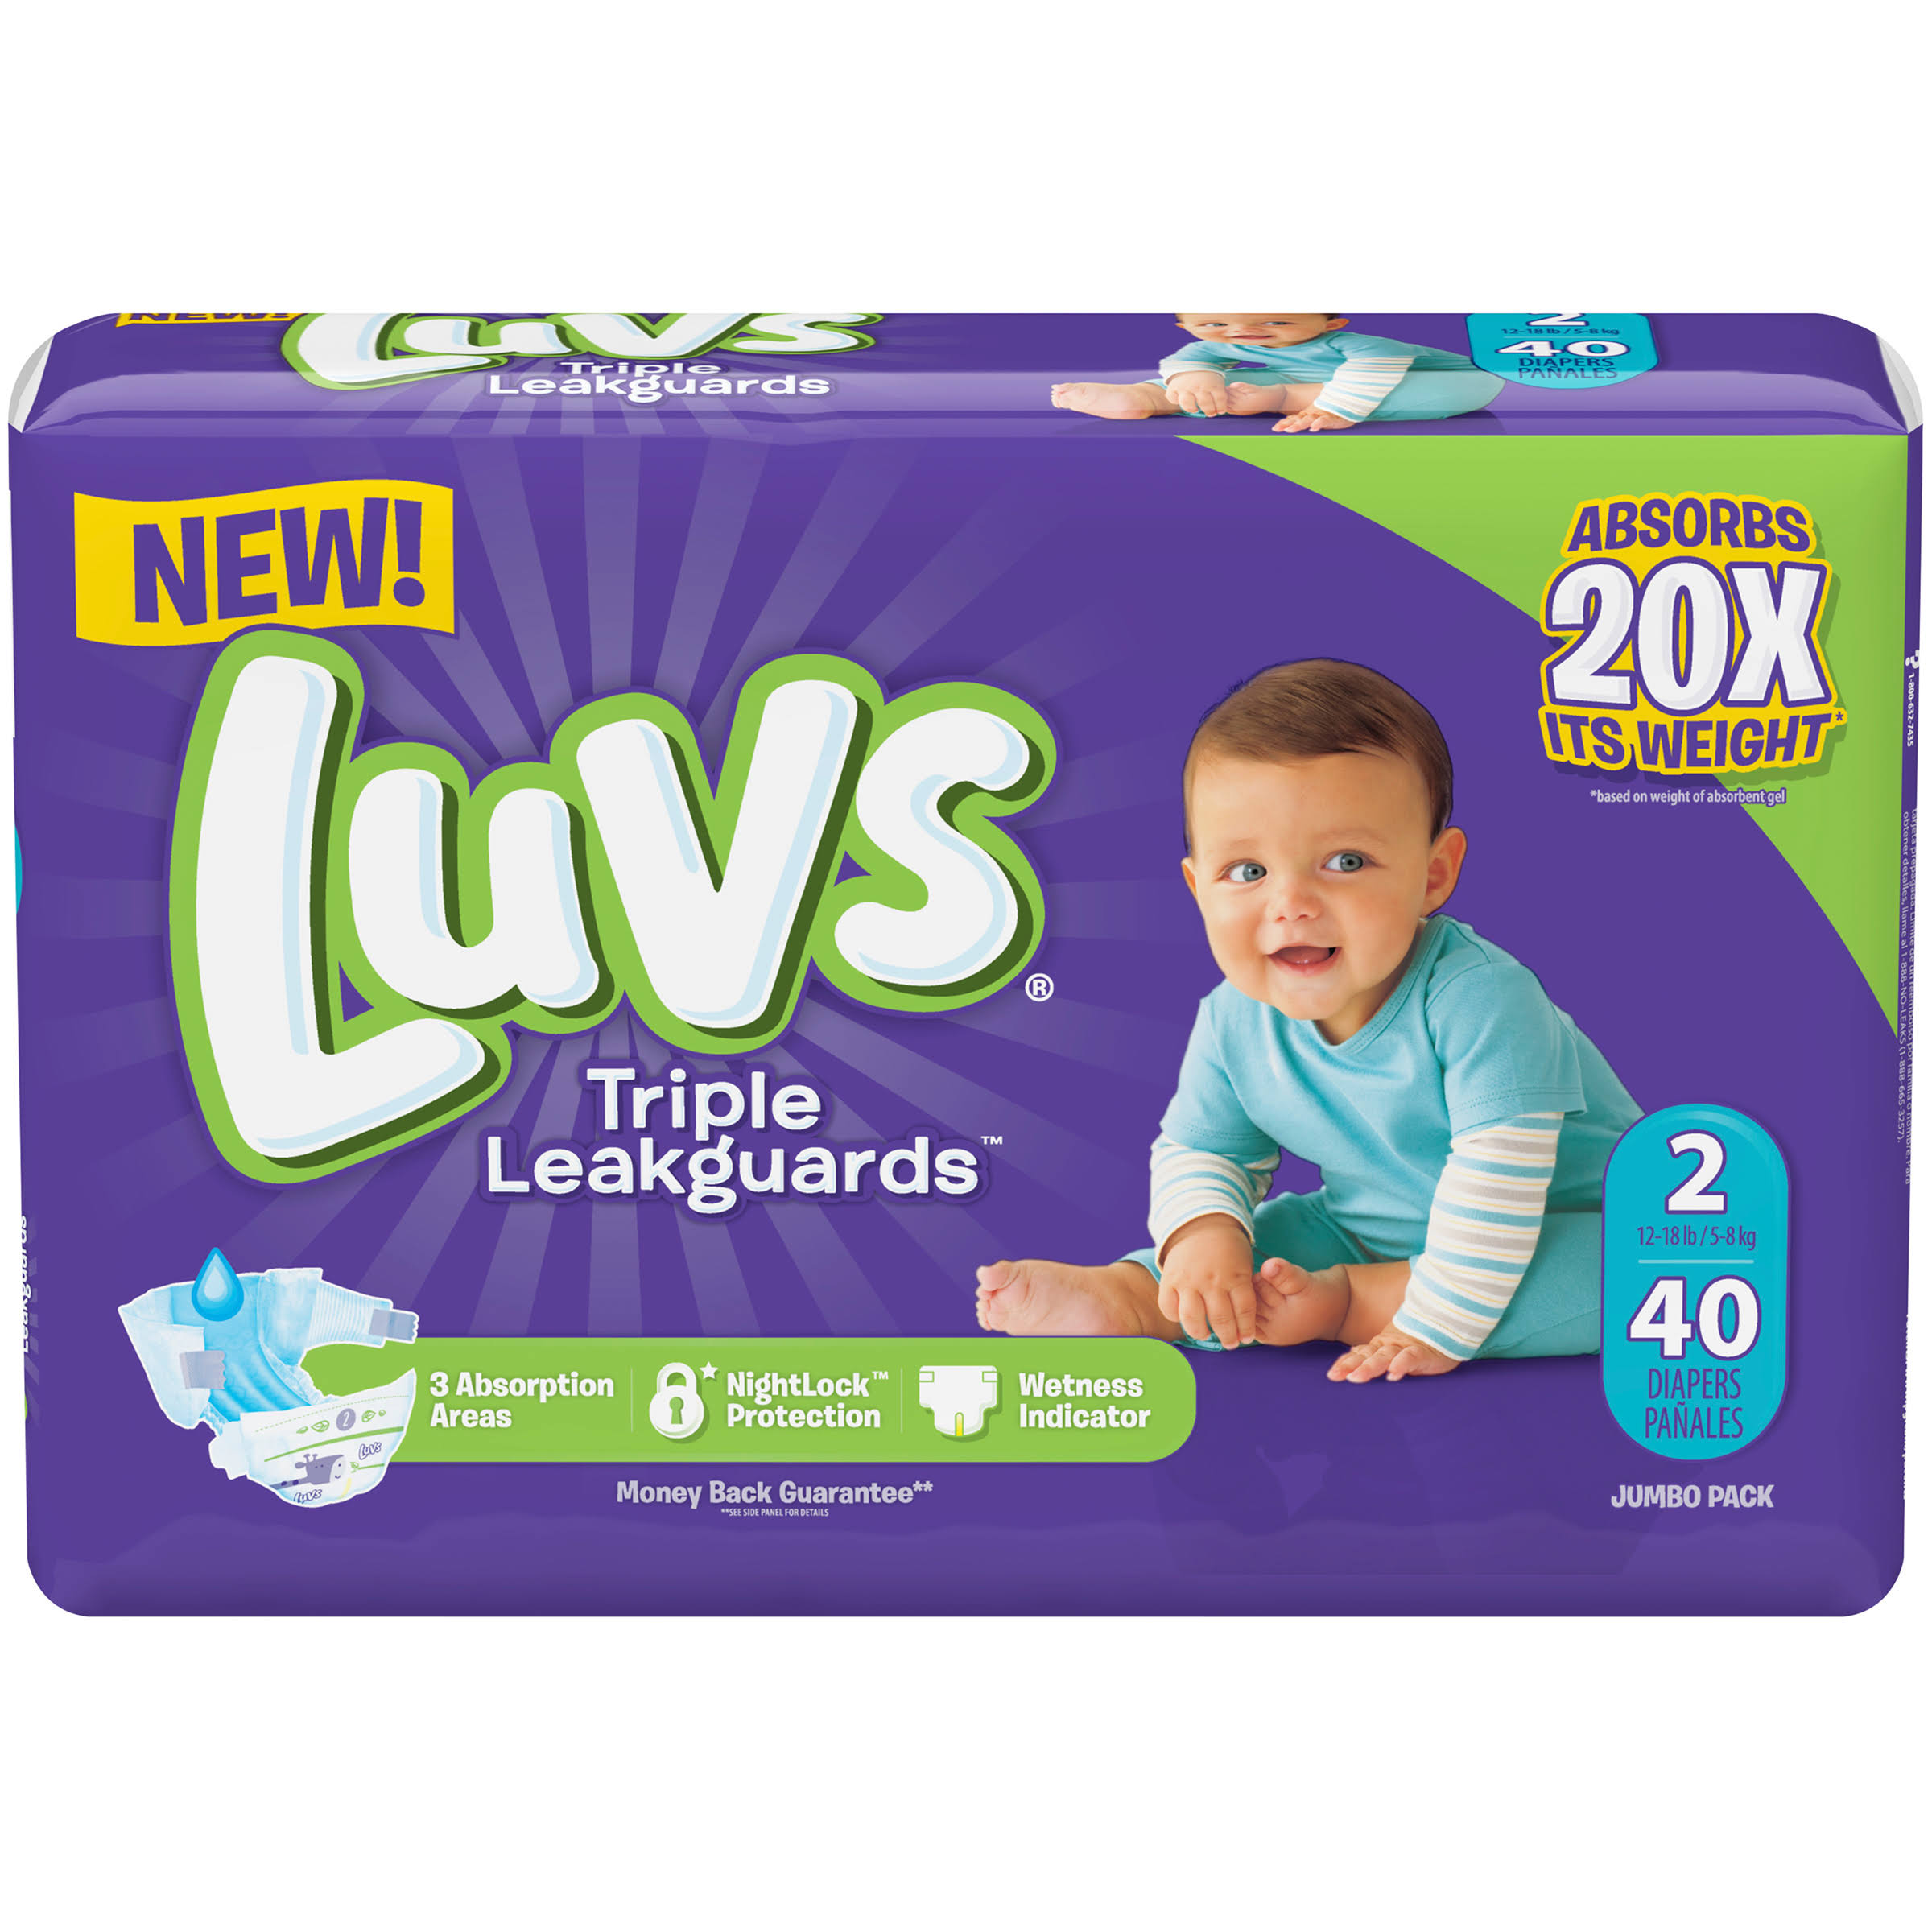 Luvs Ultra Leakguards Diapers - 40 Count, Size 2